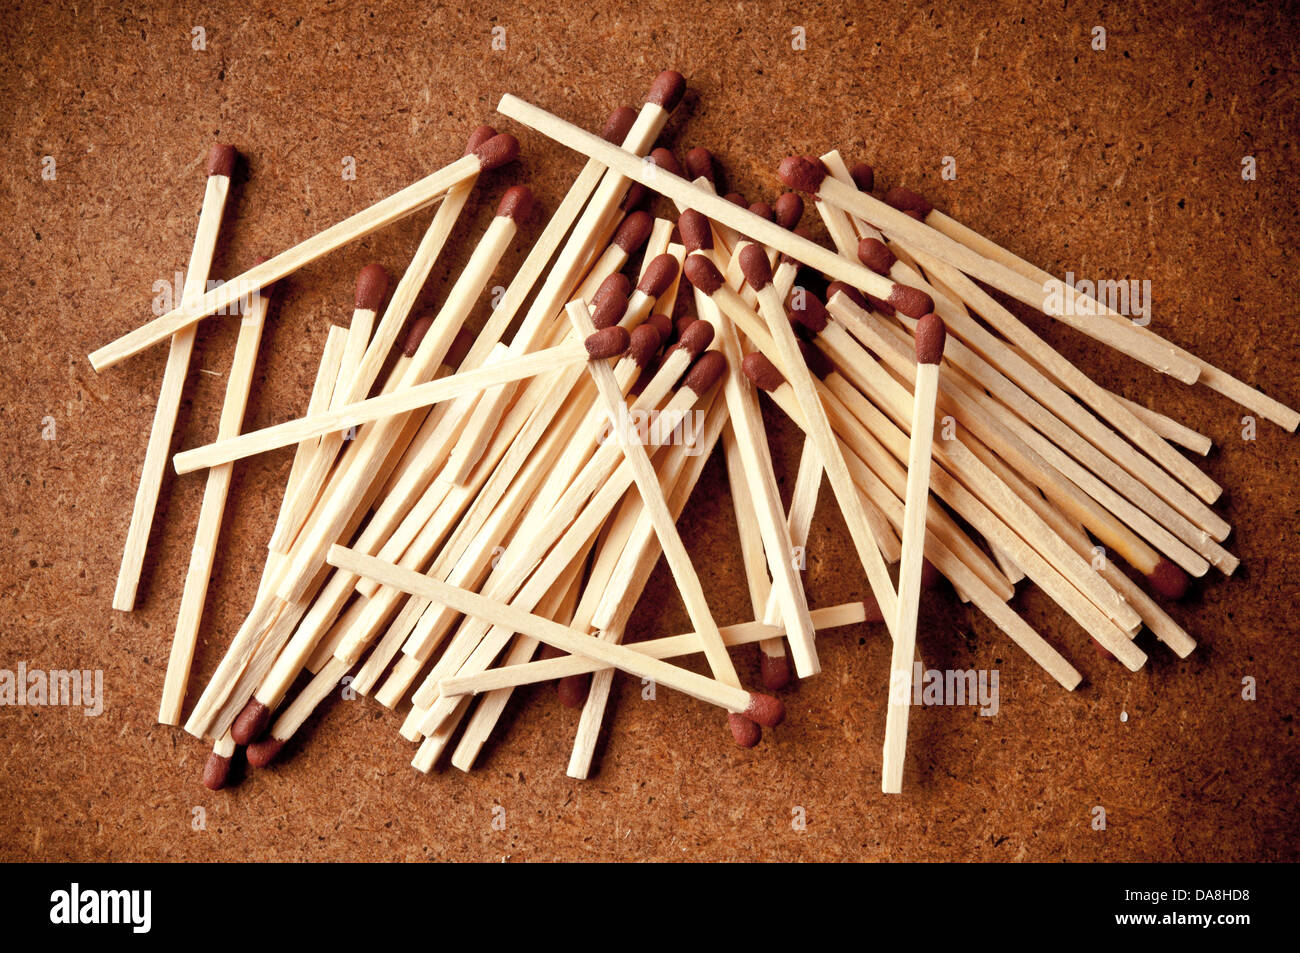 bunch of matches - Stock Image